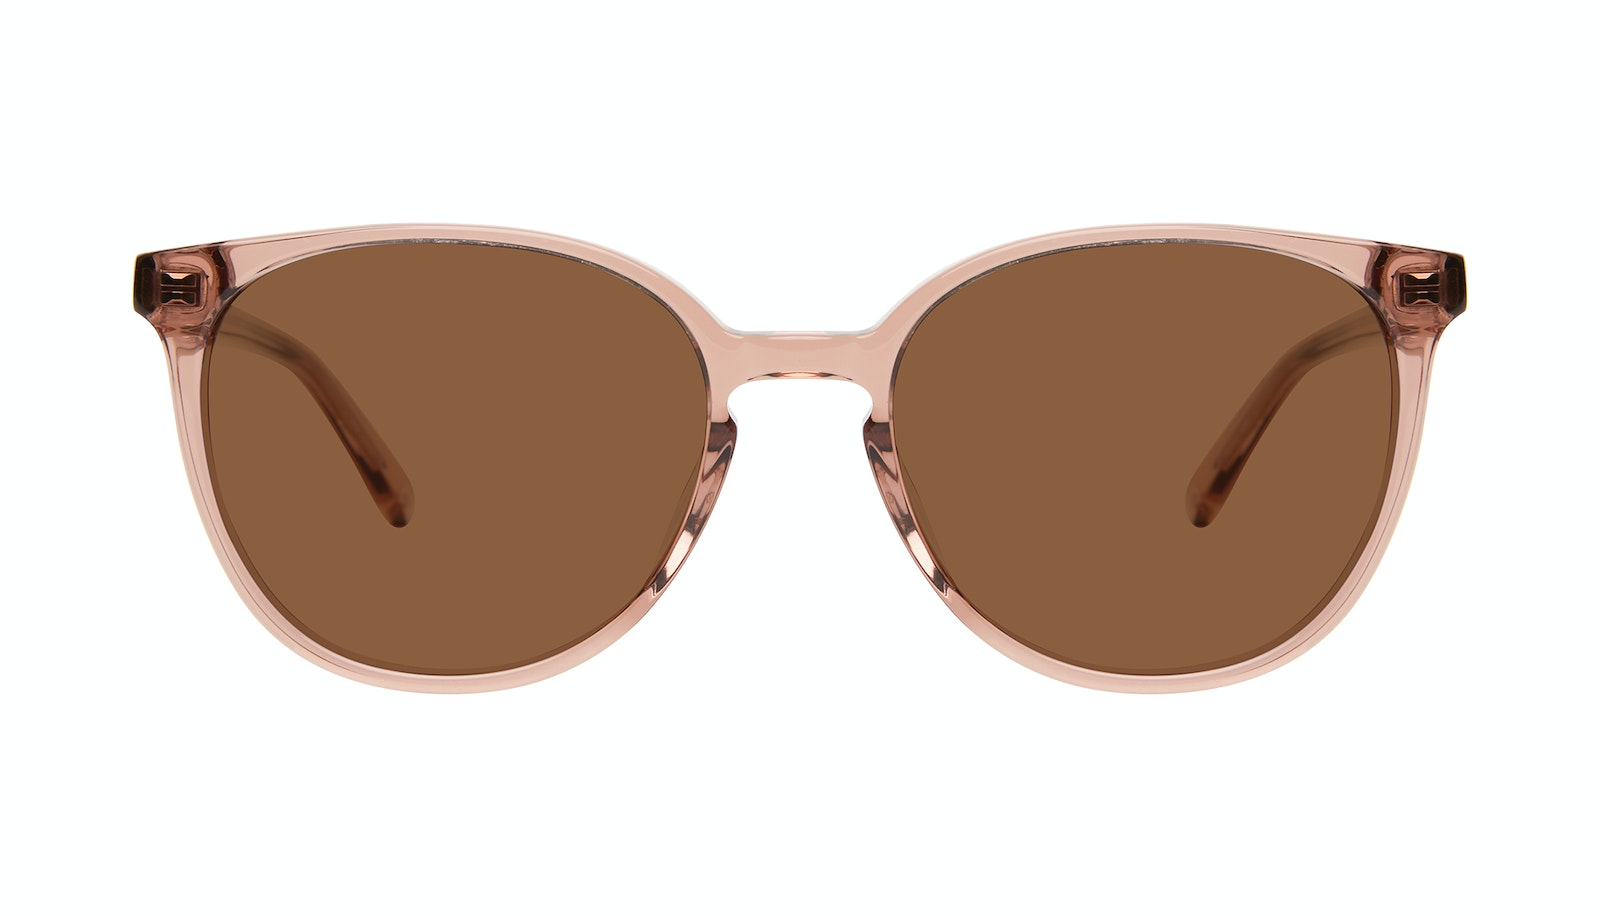 Affordable Fashion Glasses Round Sunglasses Women Impression Rose